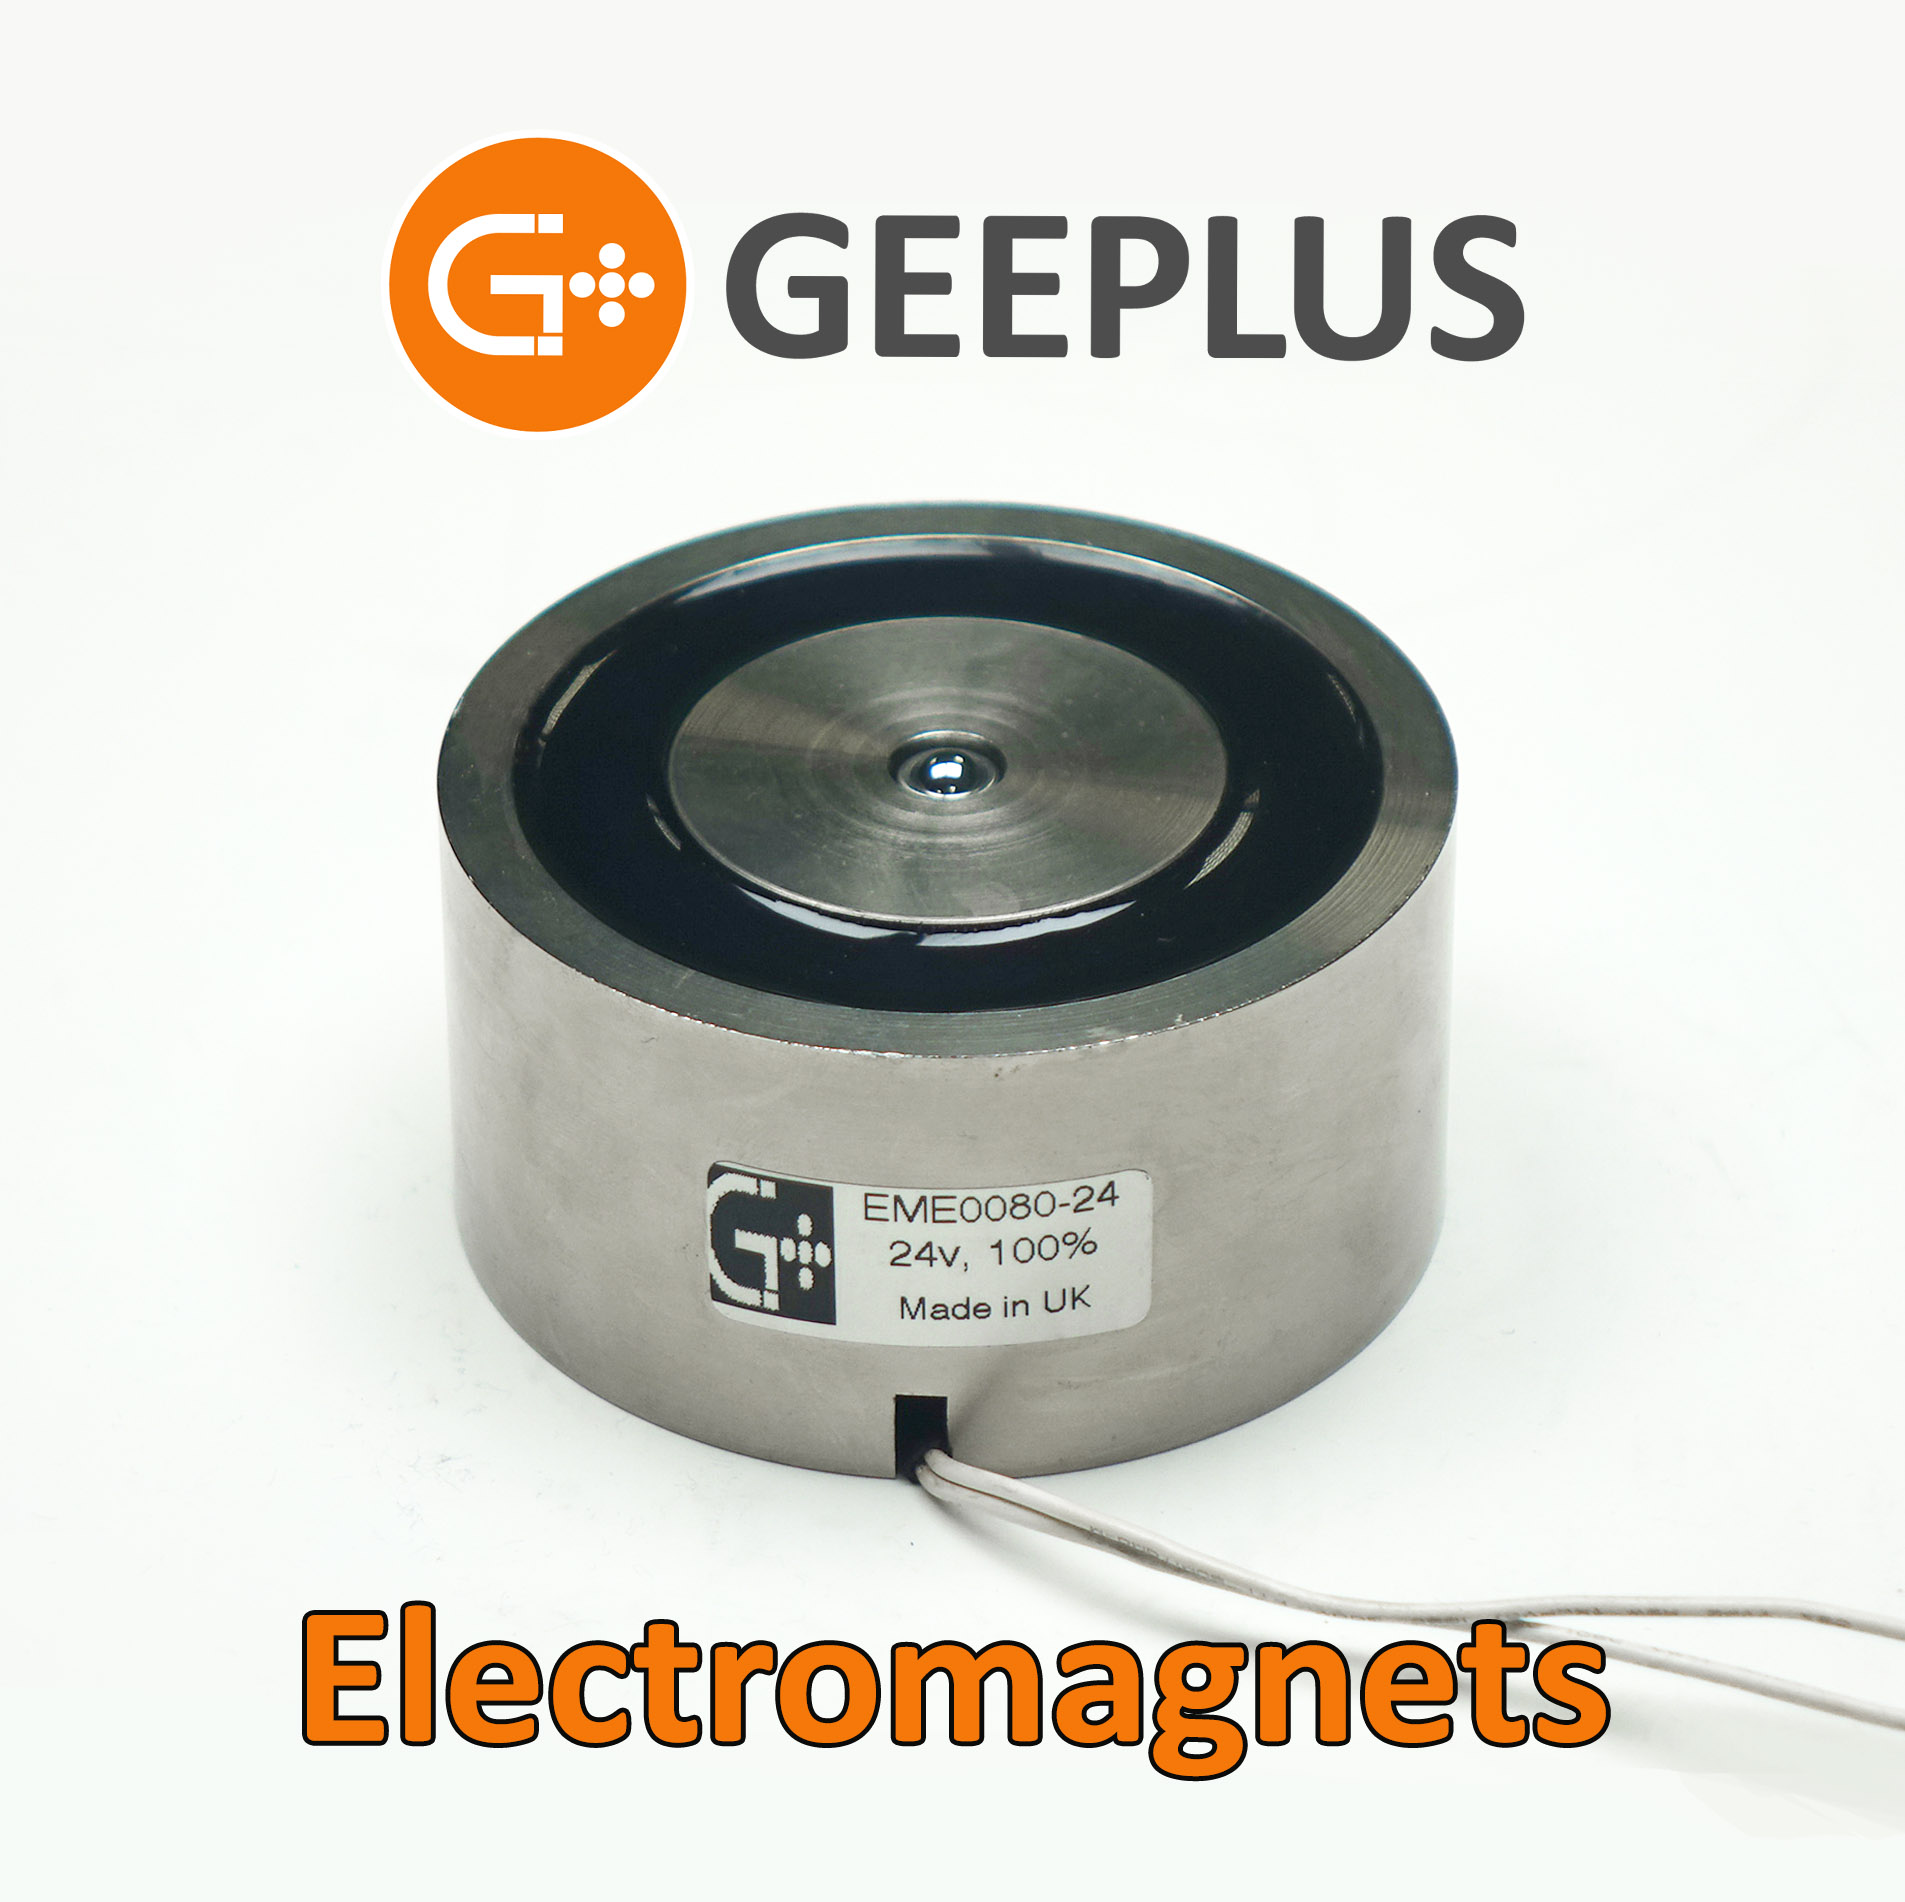 Electromagnets from Geeplus